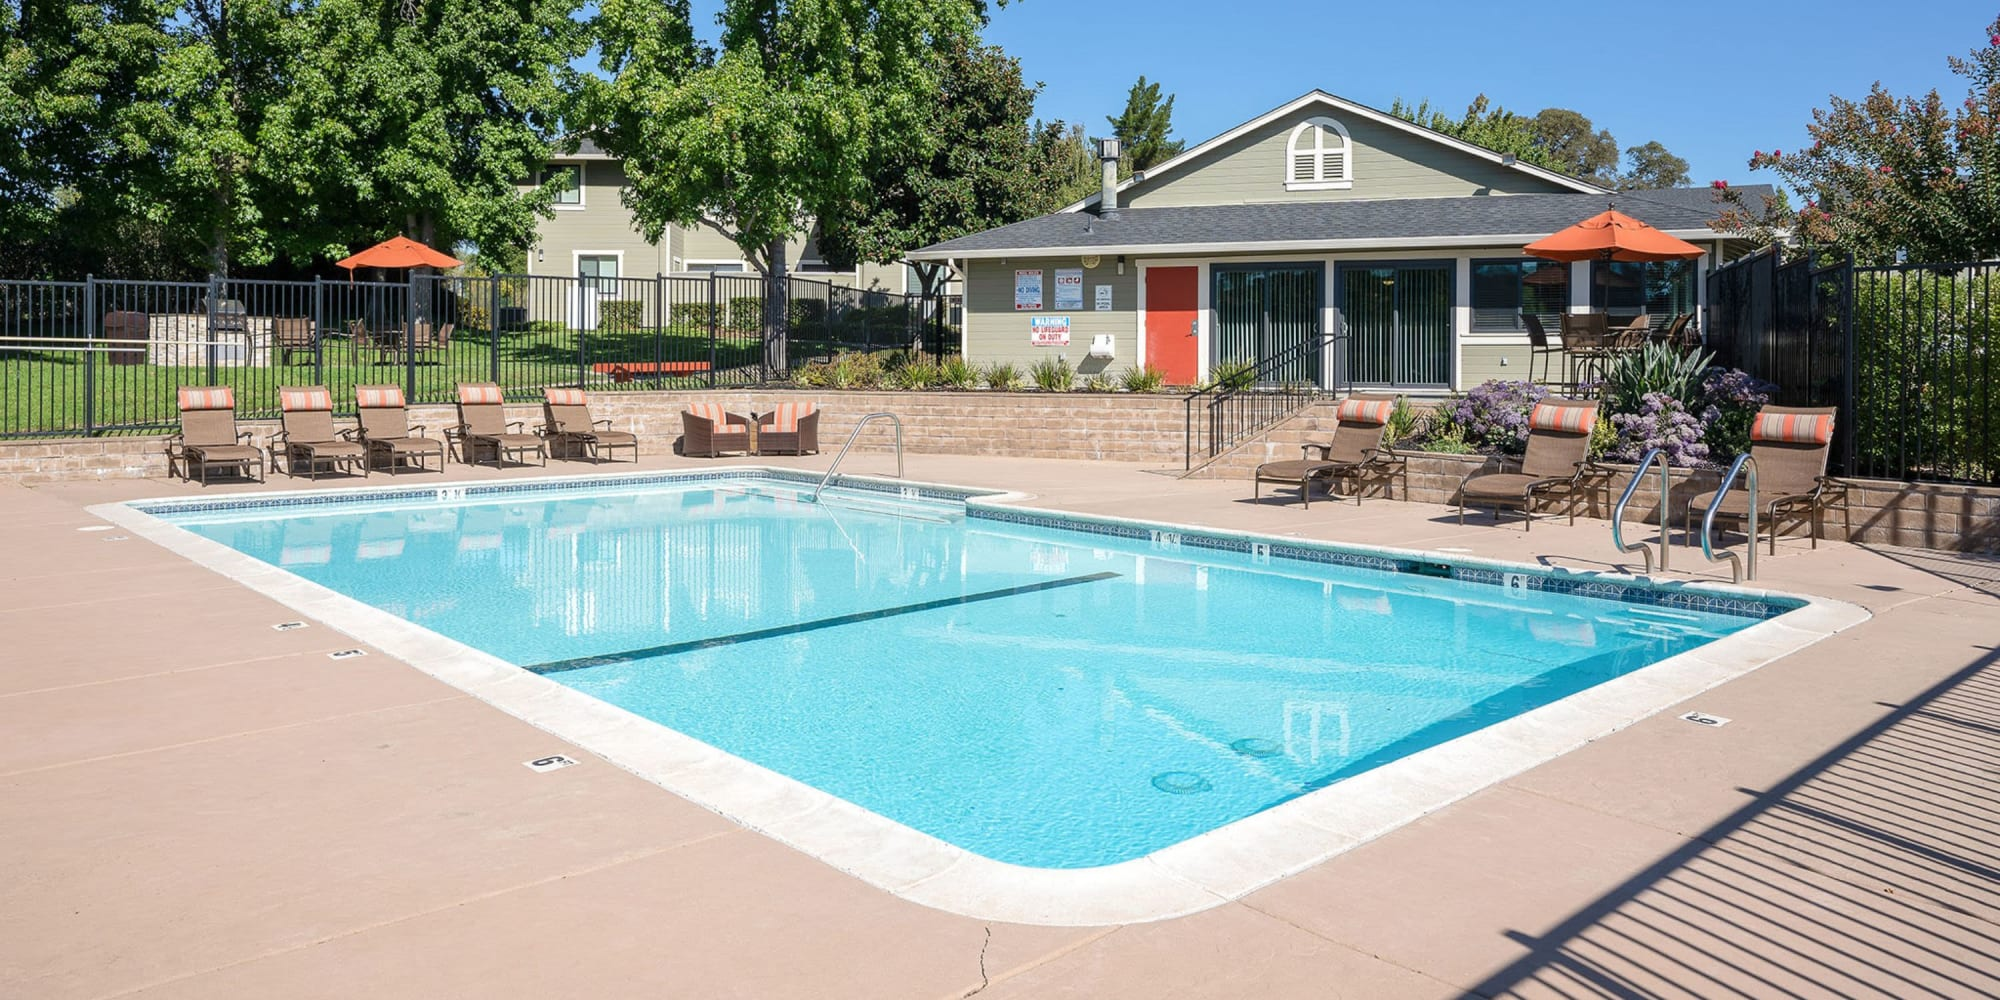 Apartments at Ridgecrest Apartment Homes in Martinez, California